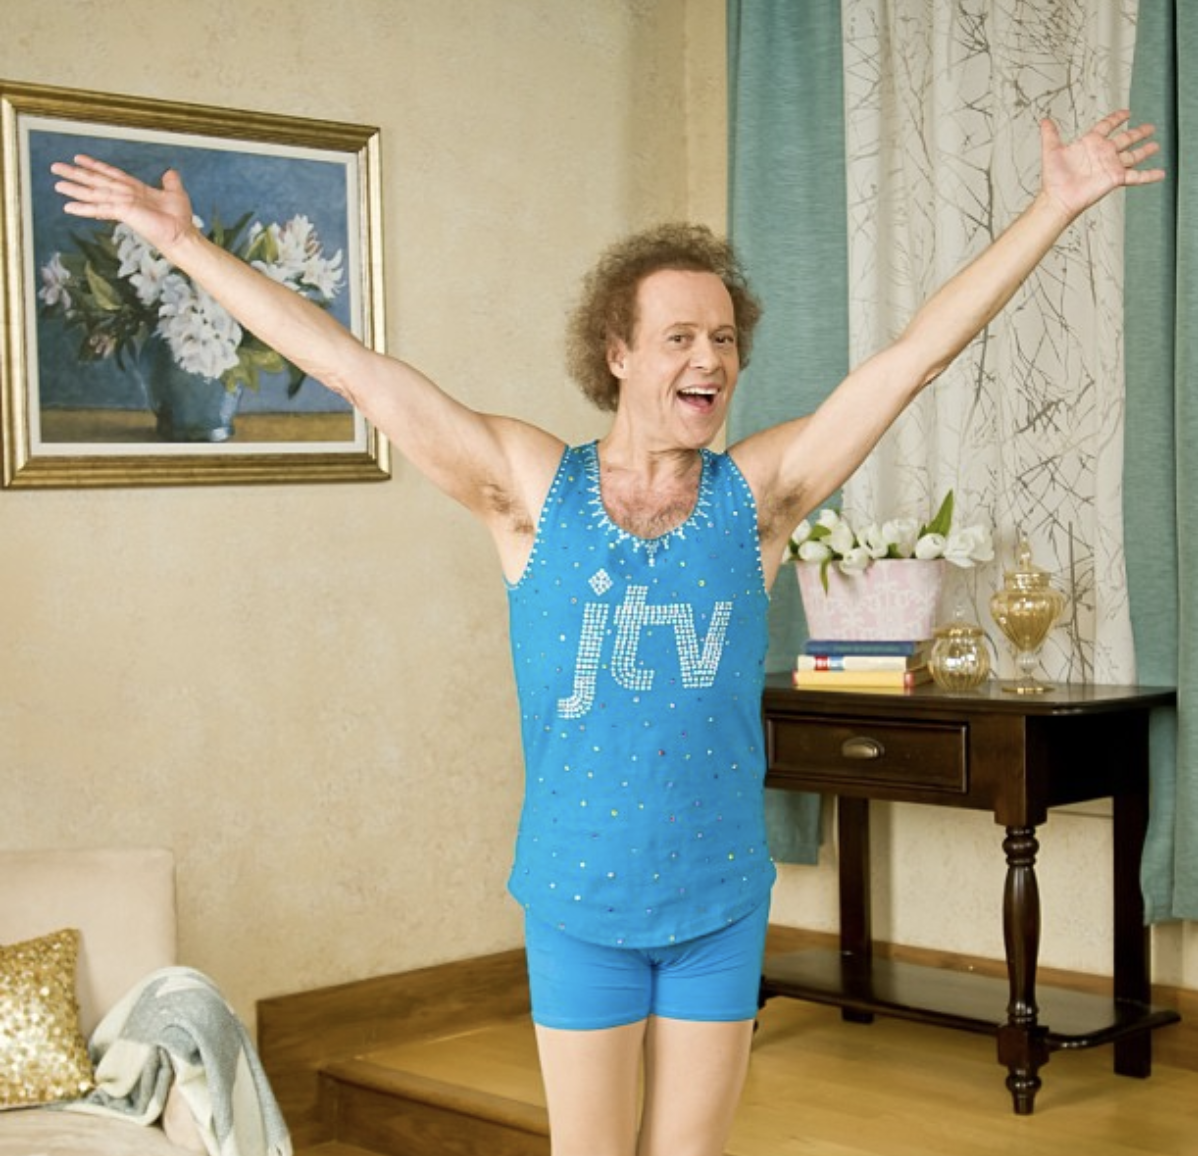 Richard Simmons of 'Sweatin' to the Oldies' is posting fitness videos 'as a comfort' during the coronavirus pandemic